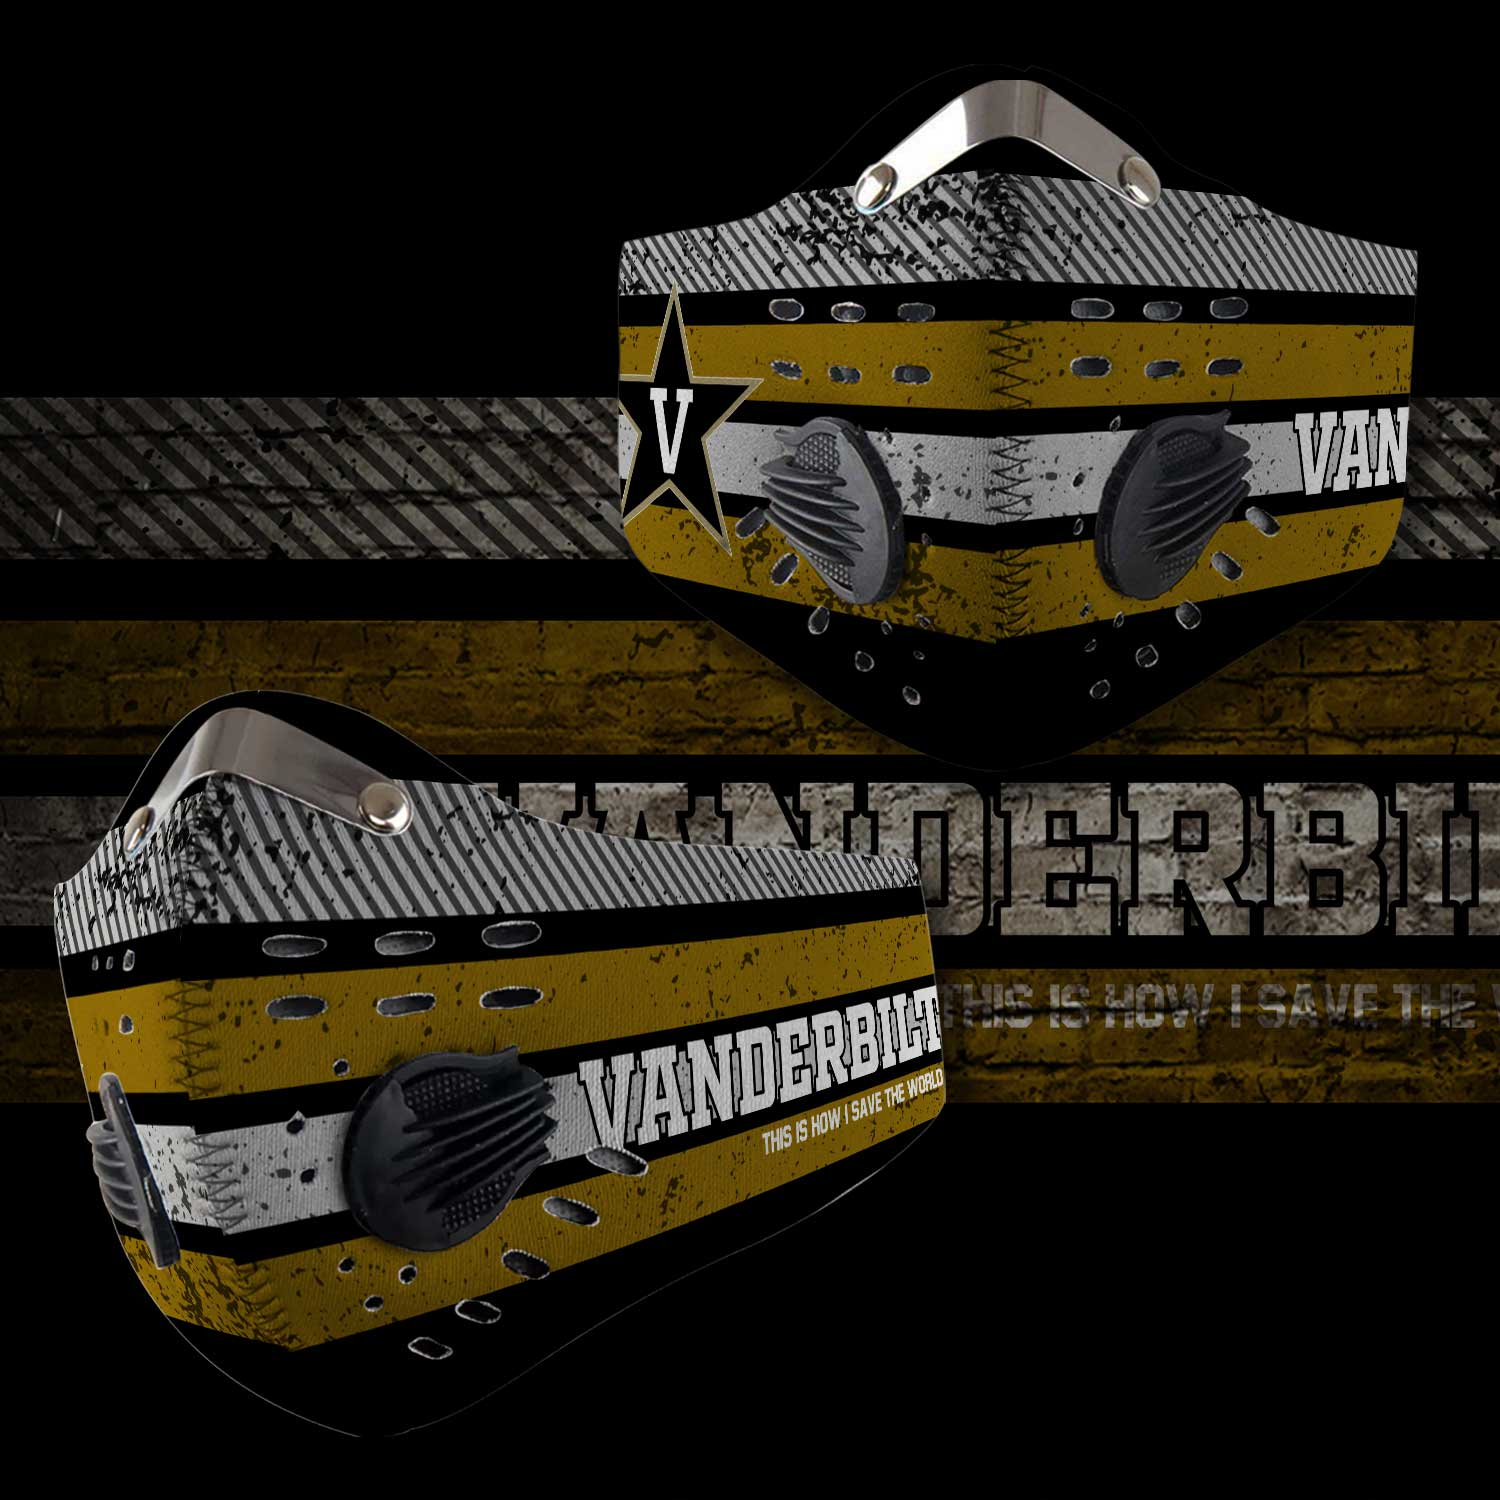 Vanderbilt commodores this is how i save the world carbon filter face mask 1